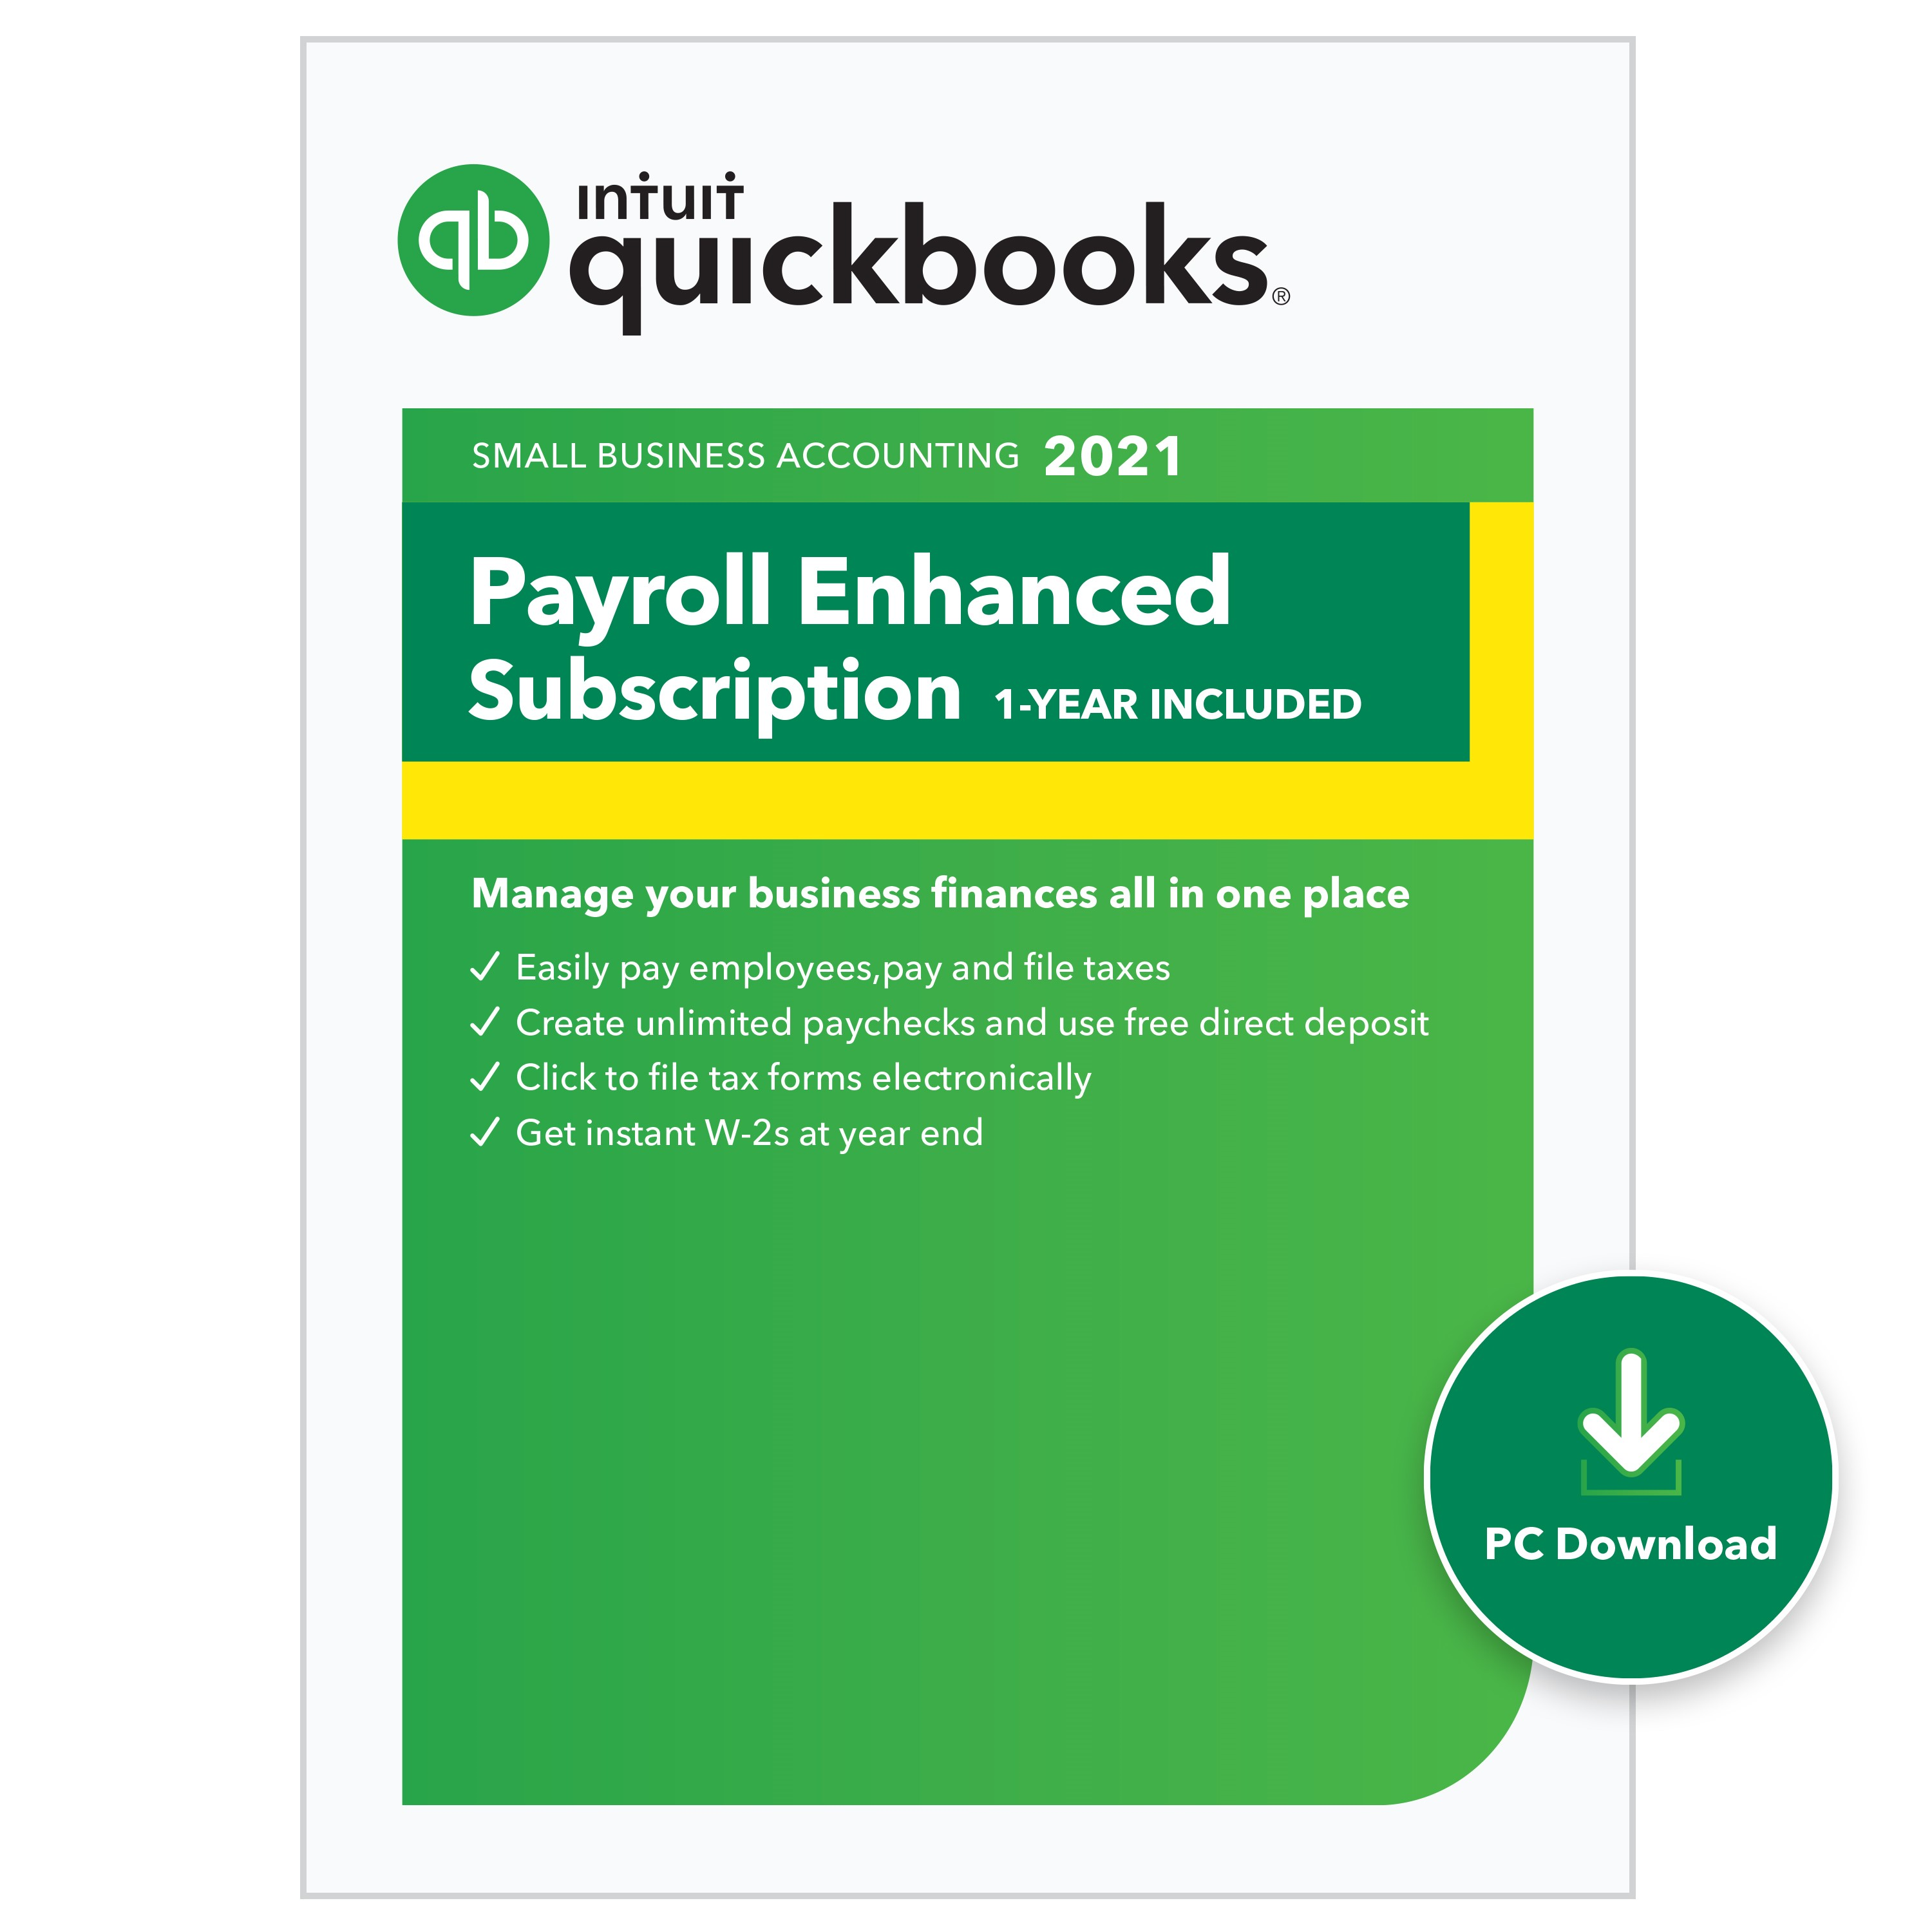 Need help with QuickBooks payroll. Call for special bundle pricing on QuickBooks Payroll software and services. Accounting Business Solutions by JCS. Give us a call 800.475.1047 QuickBooks payroll, QuickBooks payroll review, QuickBooks enhanced payroll, QuickBooks basic payroll, QuickBooks payroll consultant, QuickBooks payroll consultants, QuickBooks payroll support, QuickBooks payroll questions, quick books payroll technical support, QuickBooks payroll setup, QuickBooks payroll training, QuickBooks payroll classes, QuickBooks payroll training class, QuickBooks payroll training classes, QuickBooks payroll class, QuickBooks payroll course, QuickBooks payroll training course, QuickBooks payroll training courses, QuickBooks payroll course,